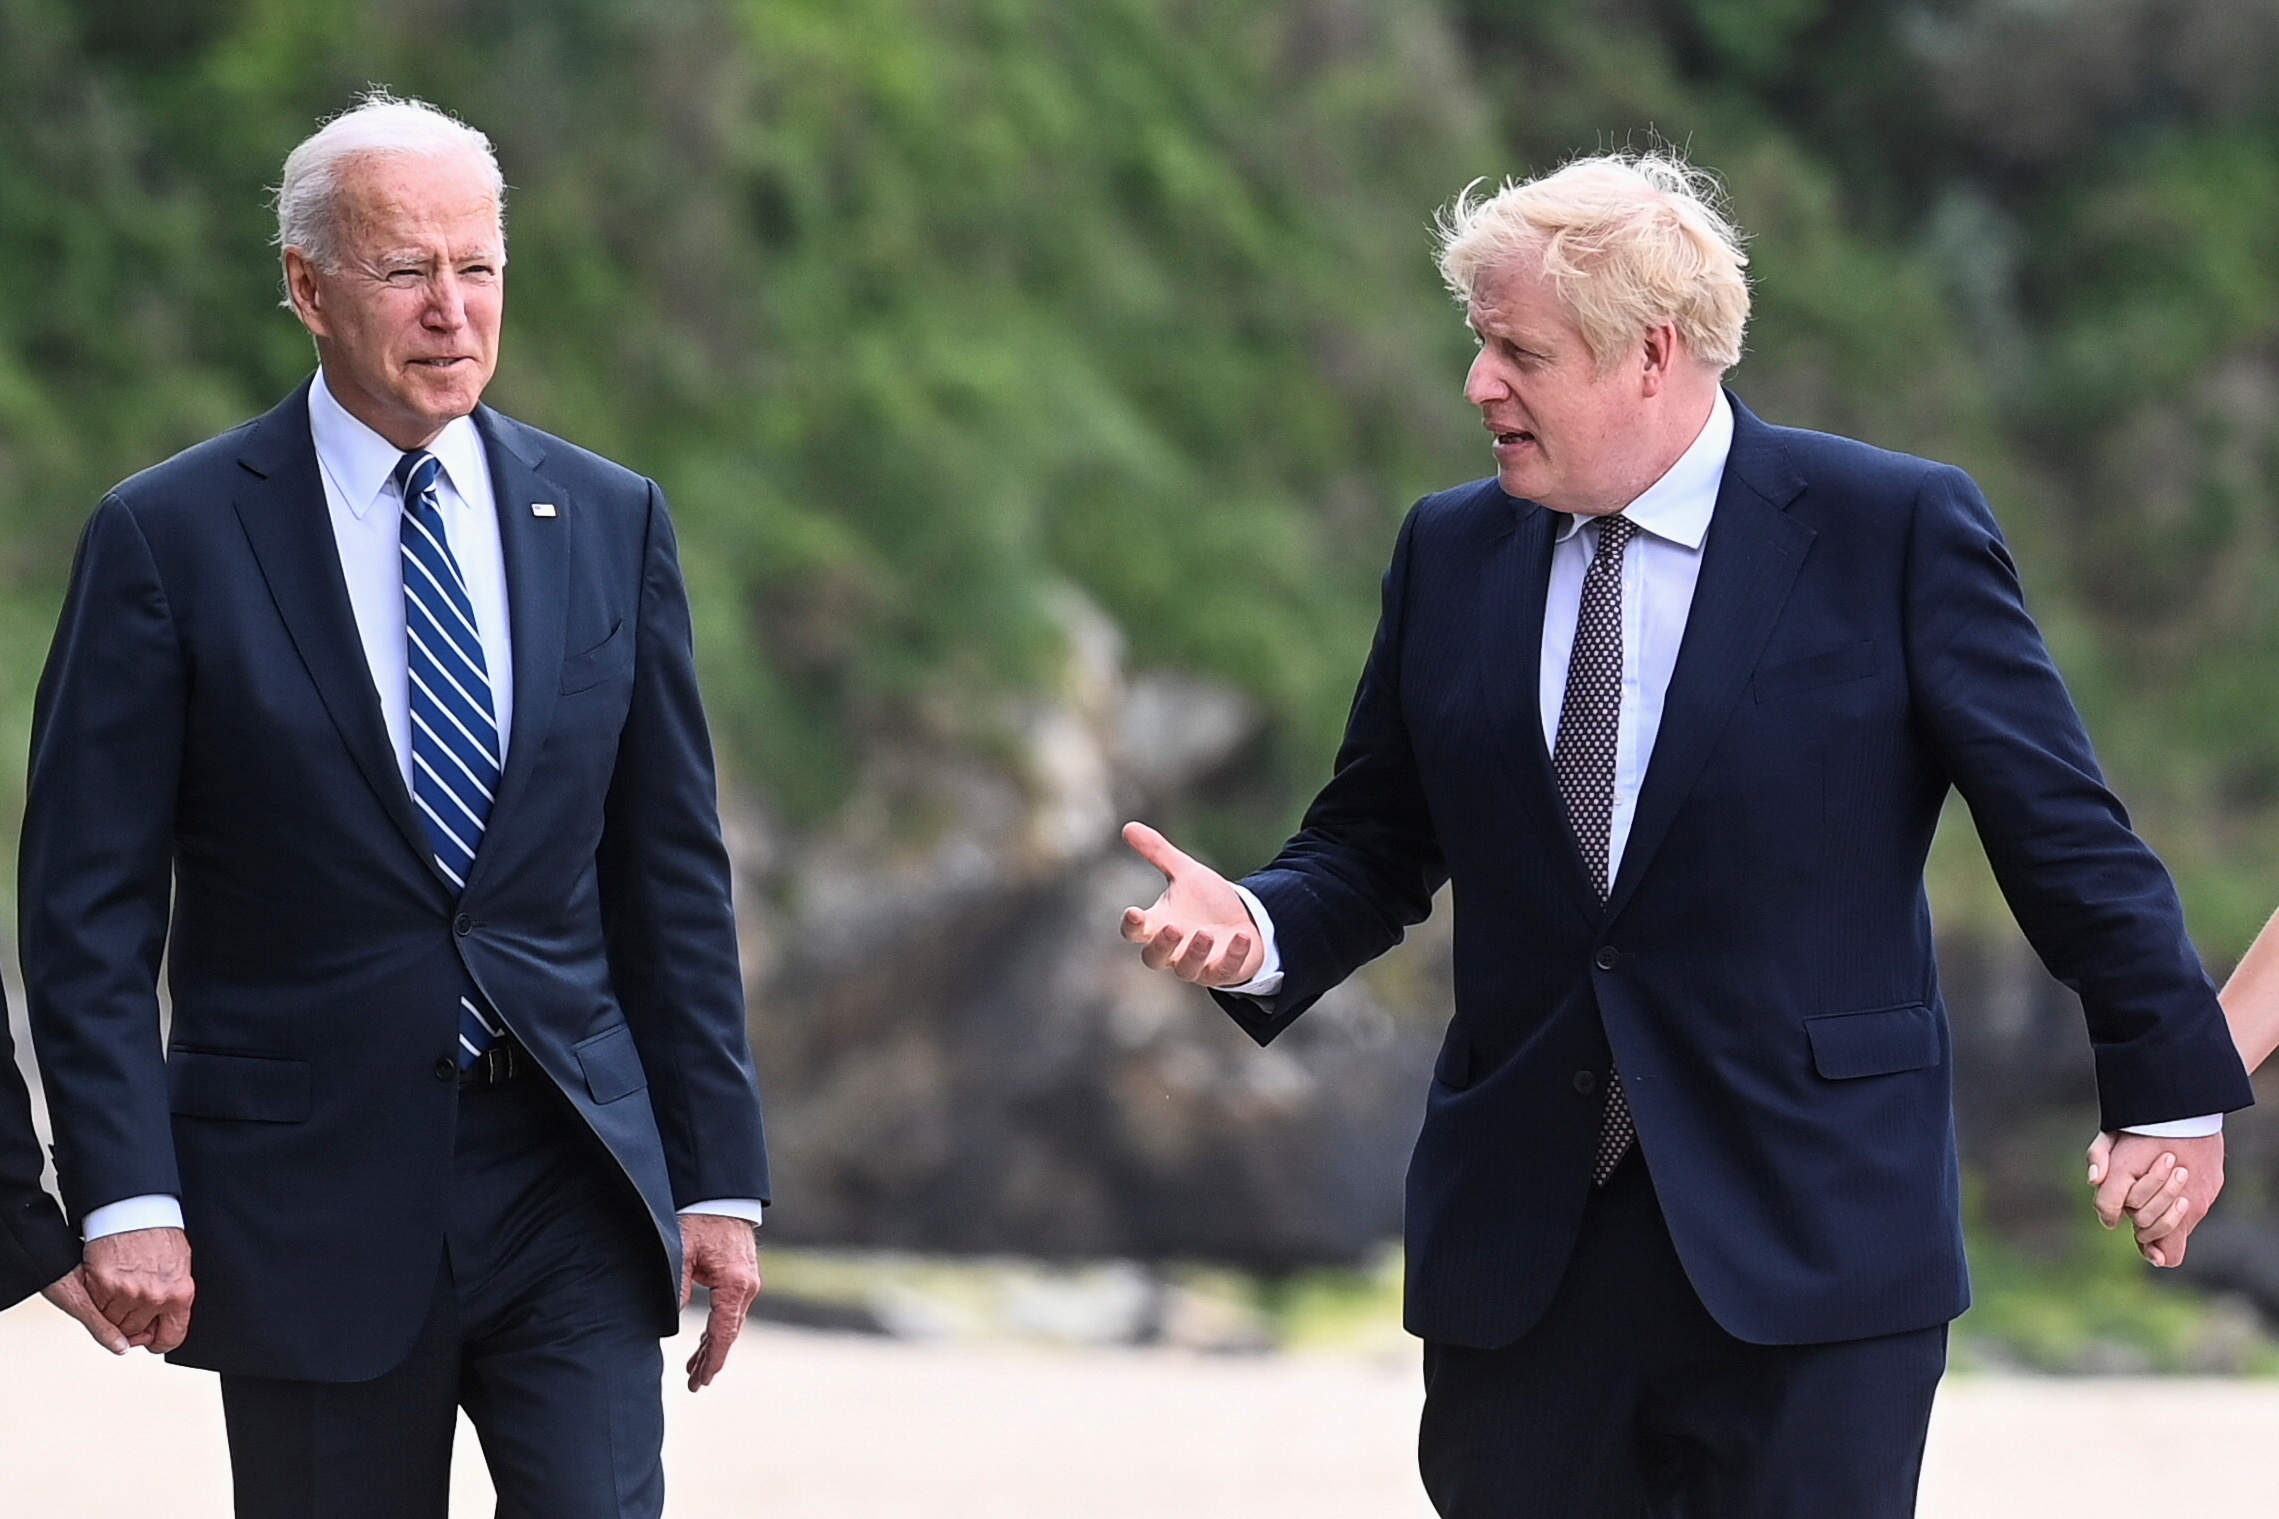 Britain's Prime Minister Boris Johnson speaks with U.S. President Joe Biden while they walk with their wife Carrie Johnson (not seen) and U.S. first lady Jill Biden (not seen), outside Carbis Bay Hotel, Carbis Bay, Cornwall, Britain June 10, 2021. REUTERS/Toby Melville/Pool